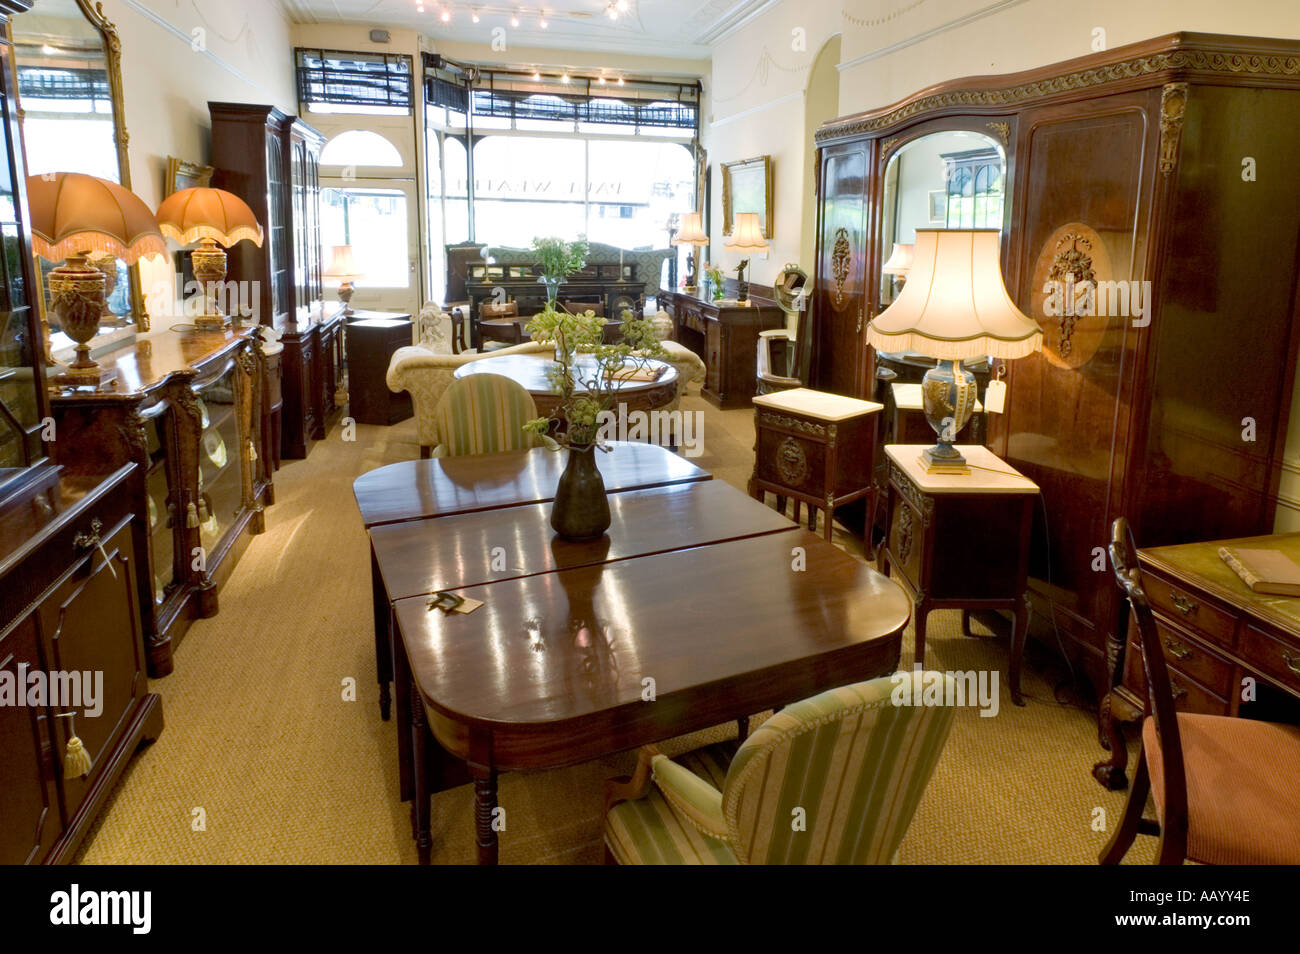 Antiques shop store interior England UK - Stock Image